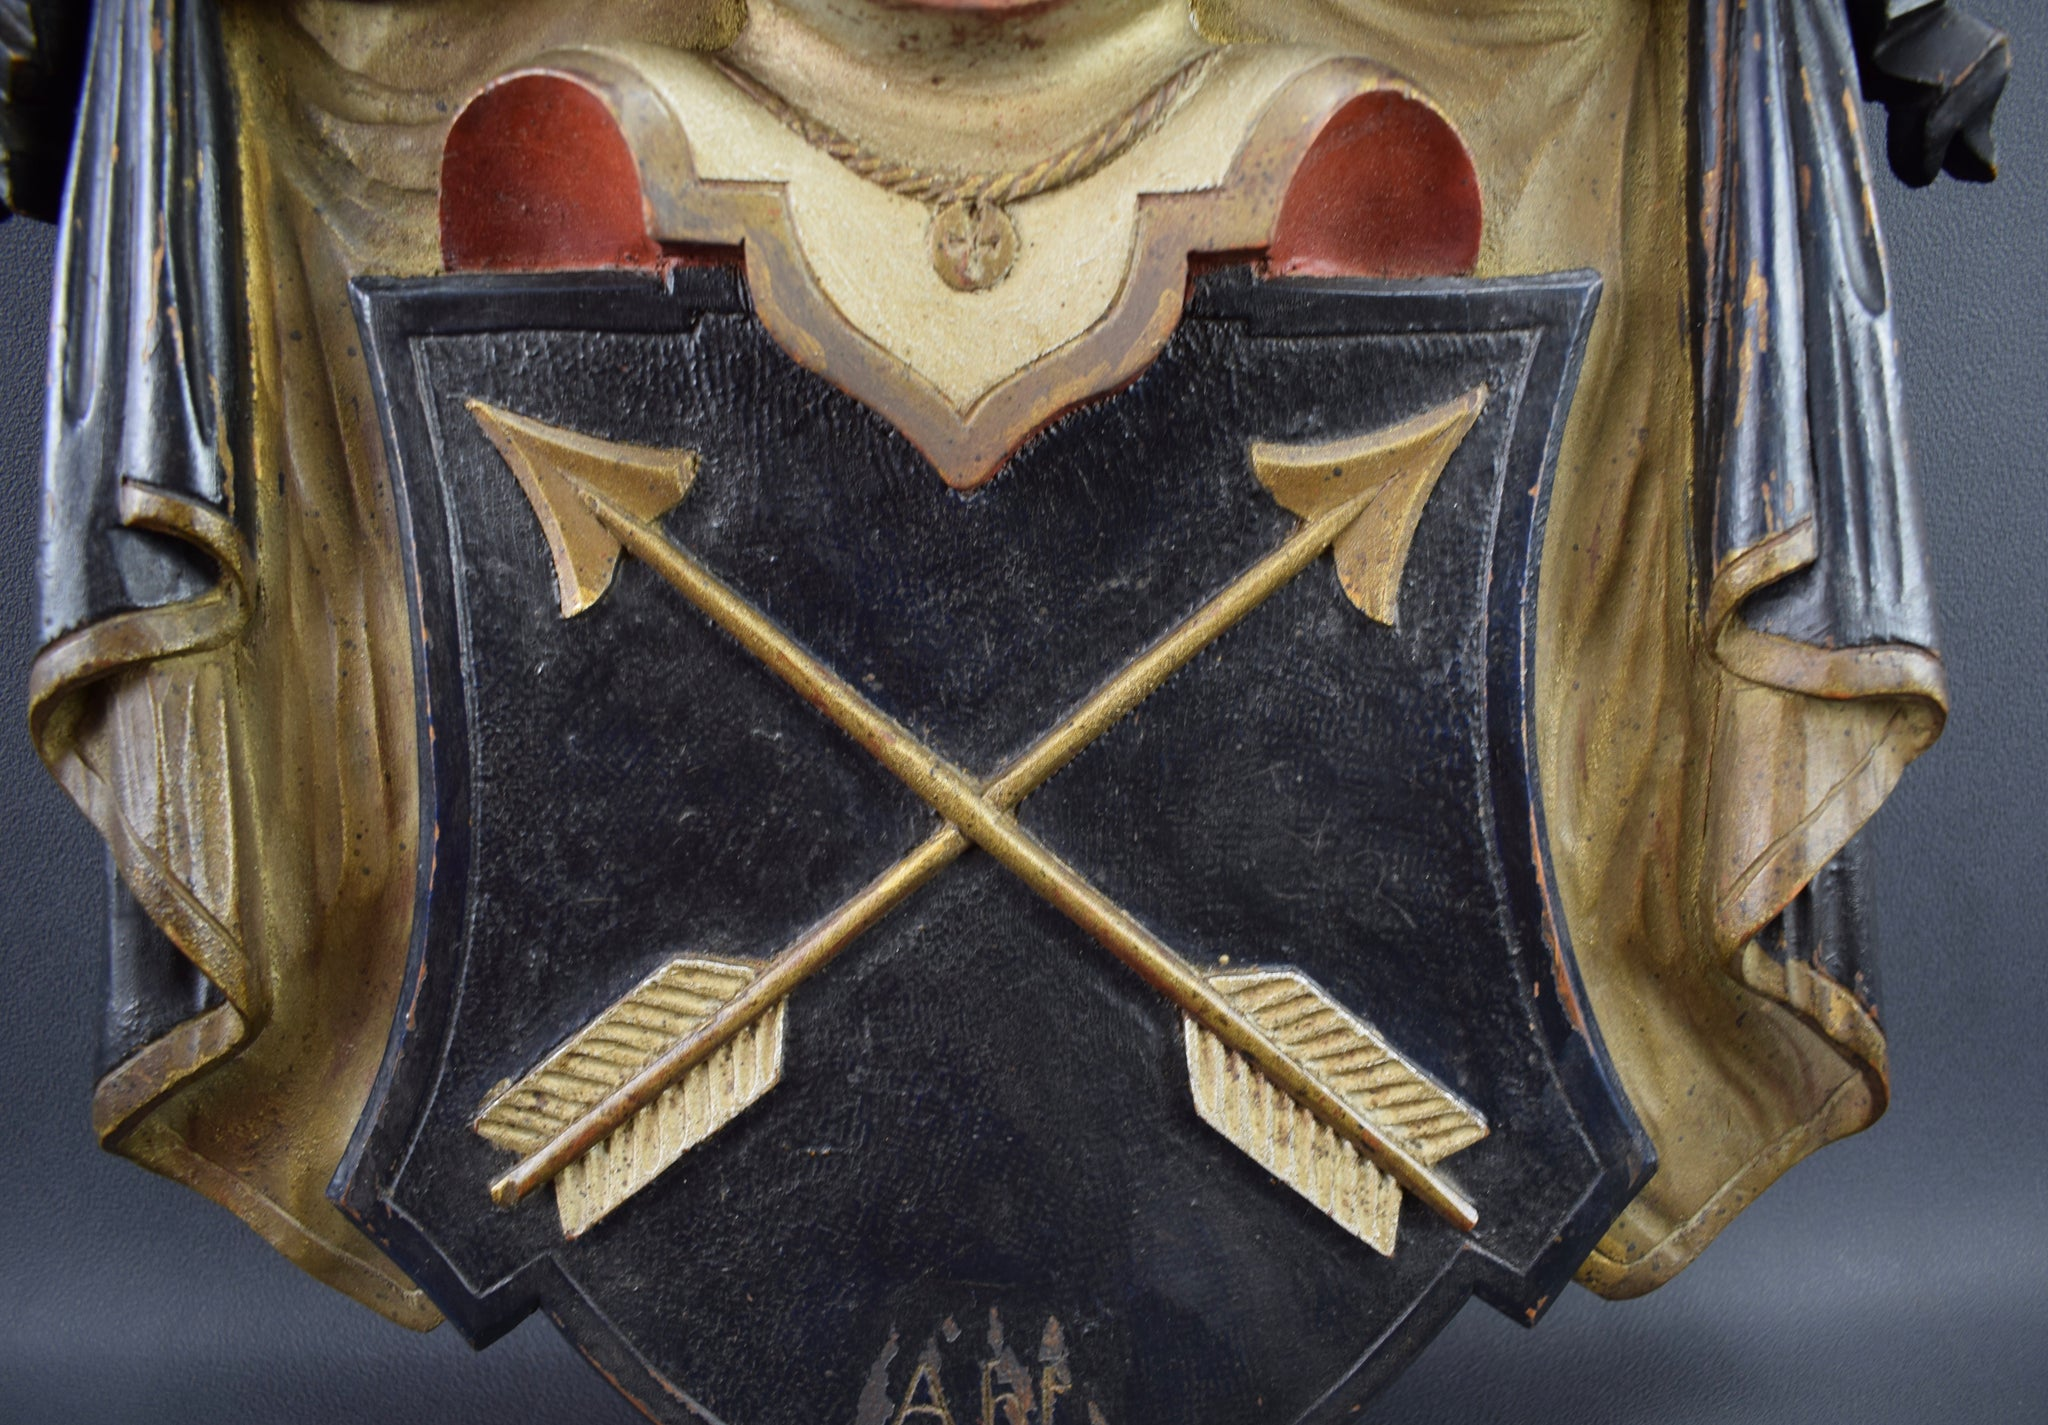 Polychrome Crowned Coat of Arms